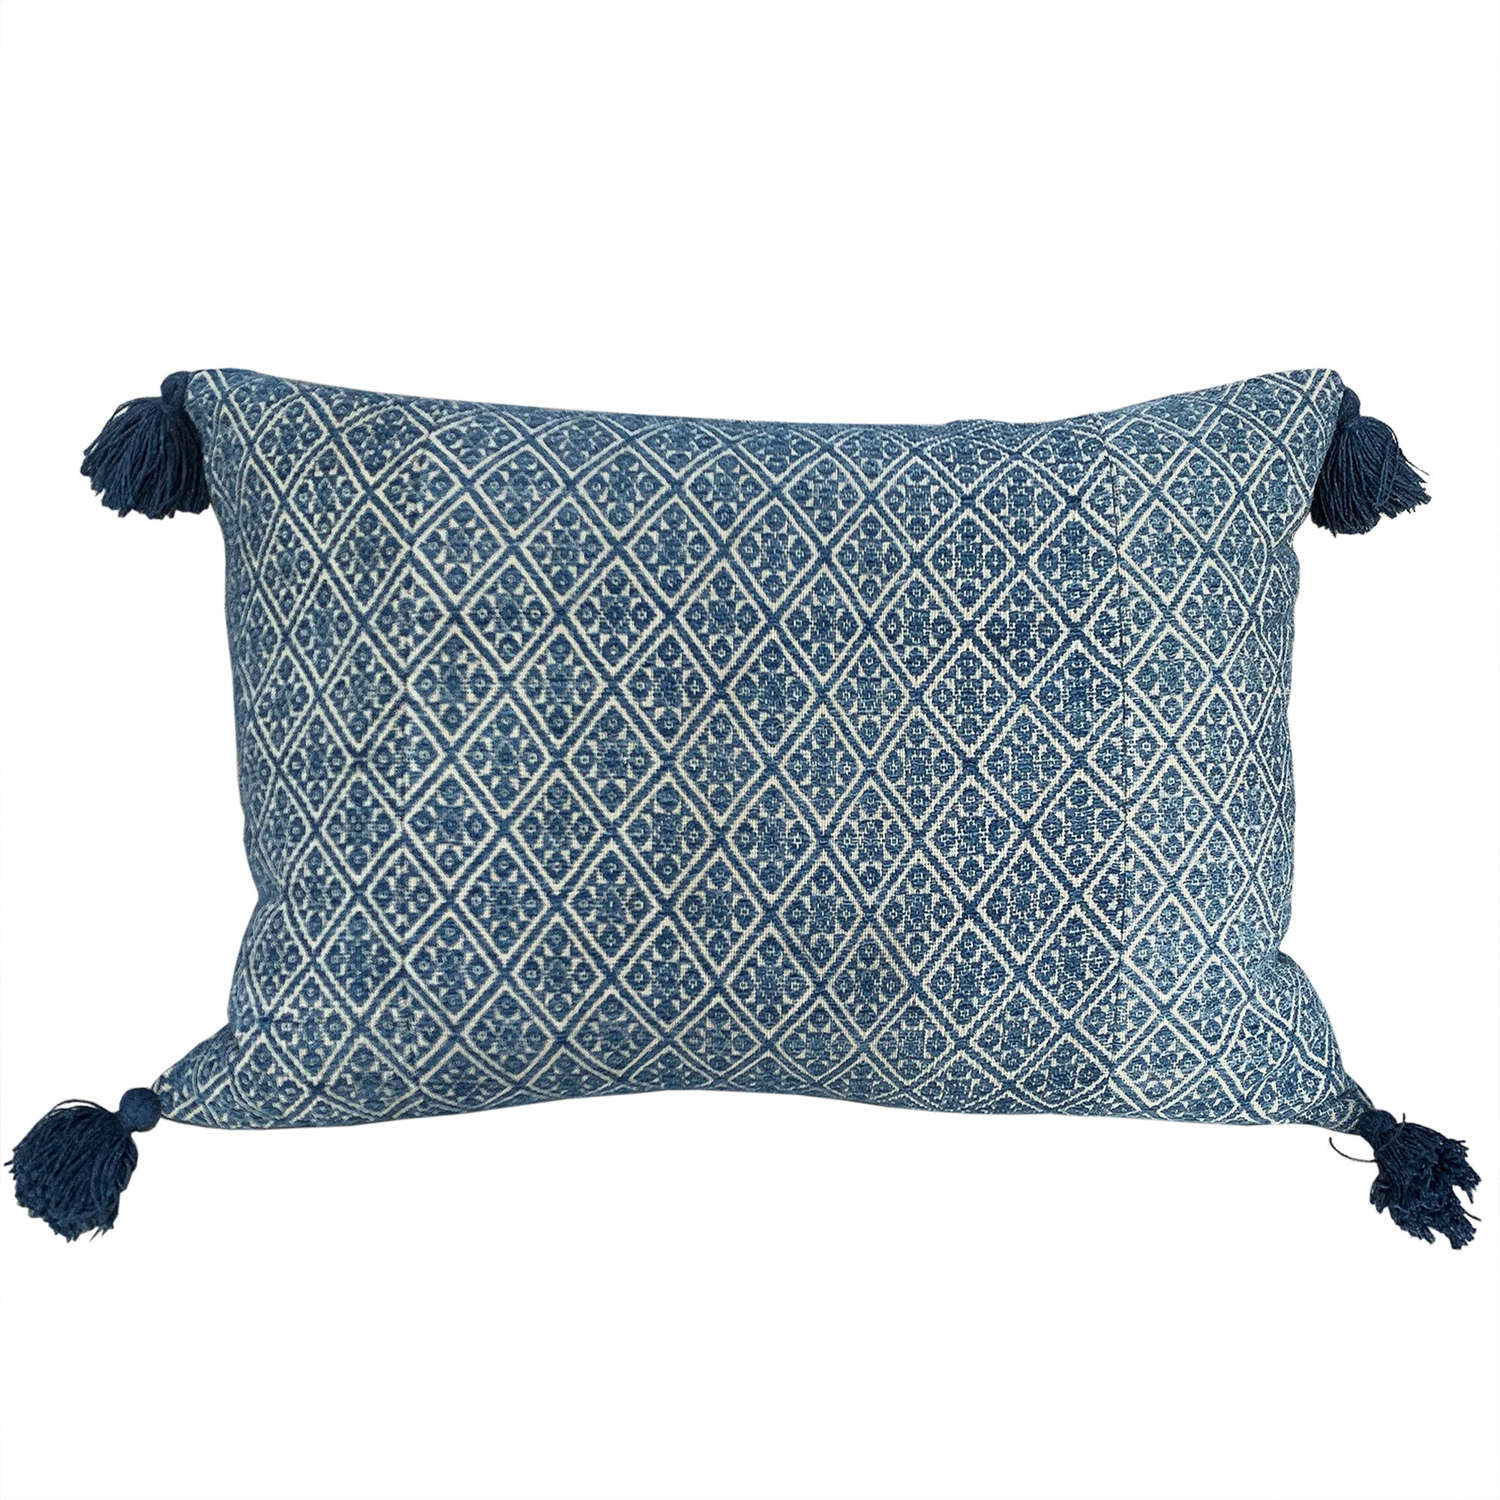 Indigo Zhuang cushions with tassels